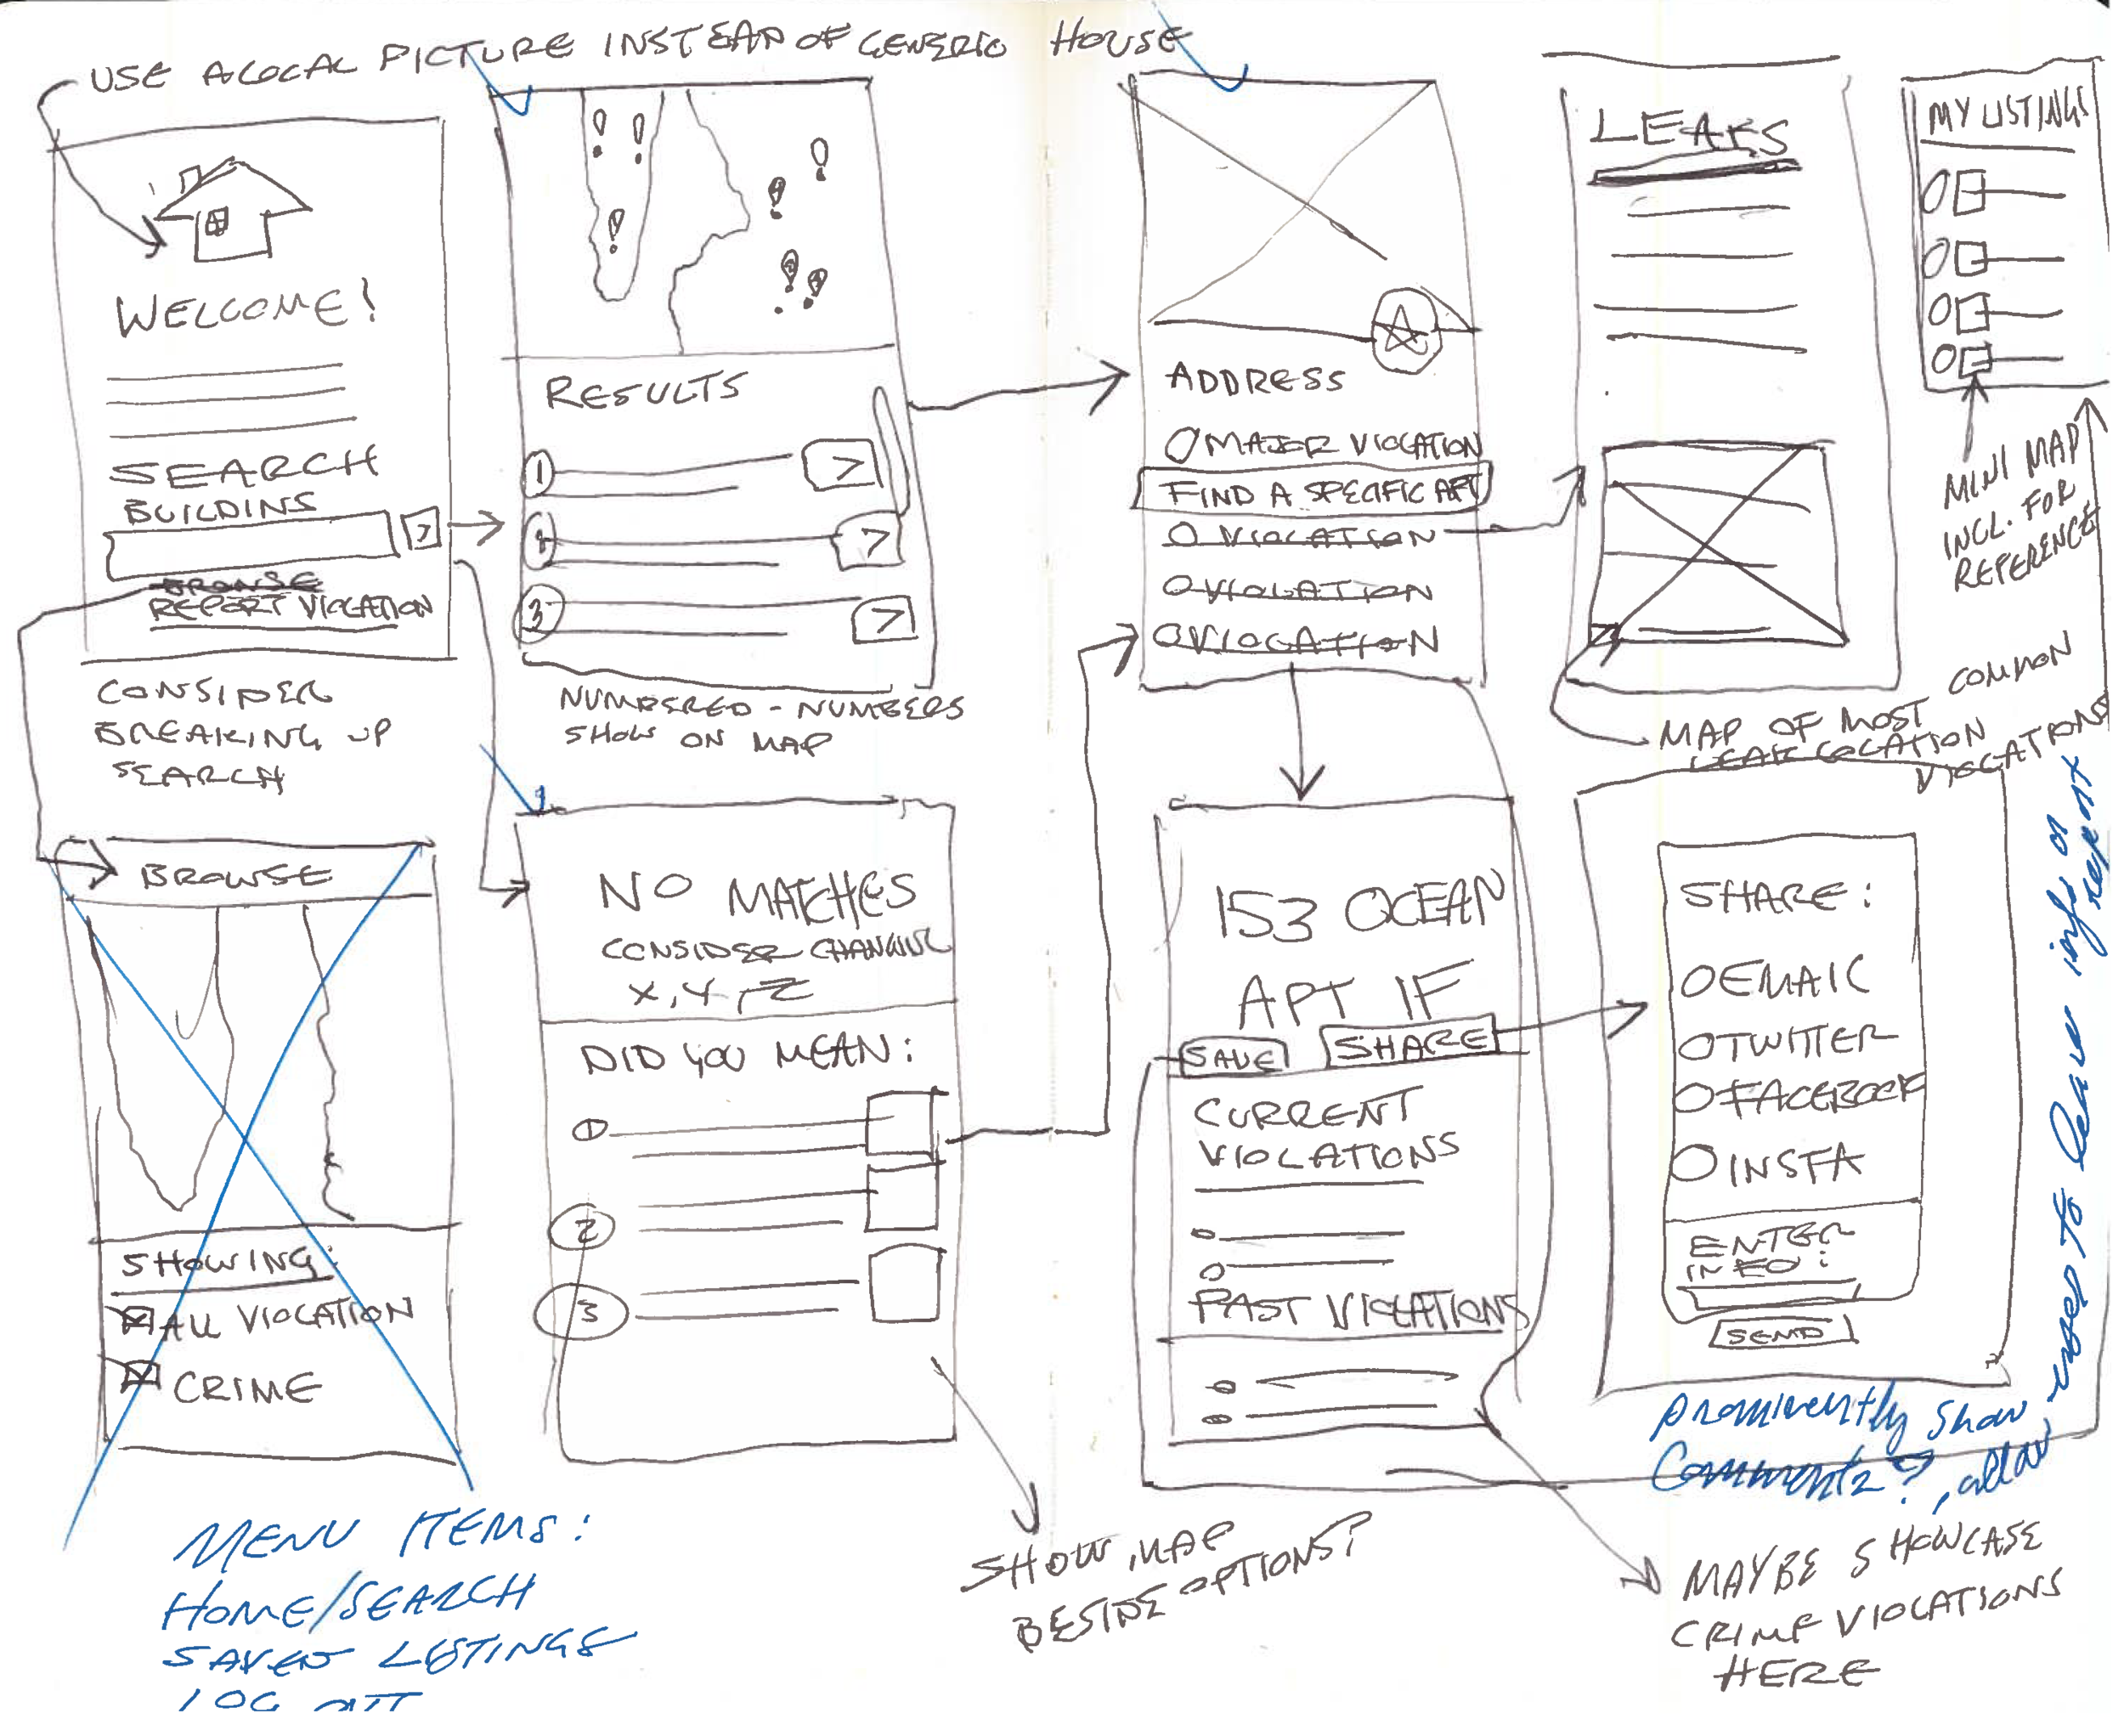 Image 5: Quick wireframe sketches describe the experience of looking for information about apartment quality.